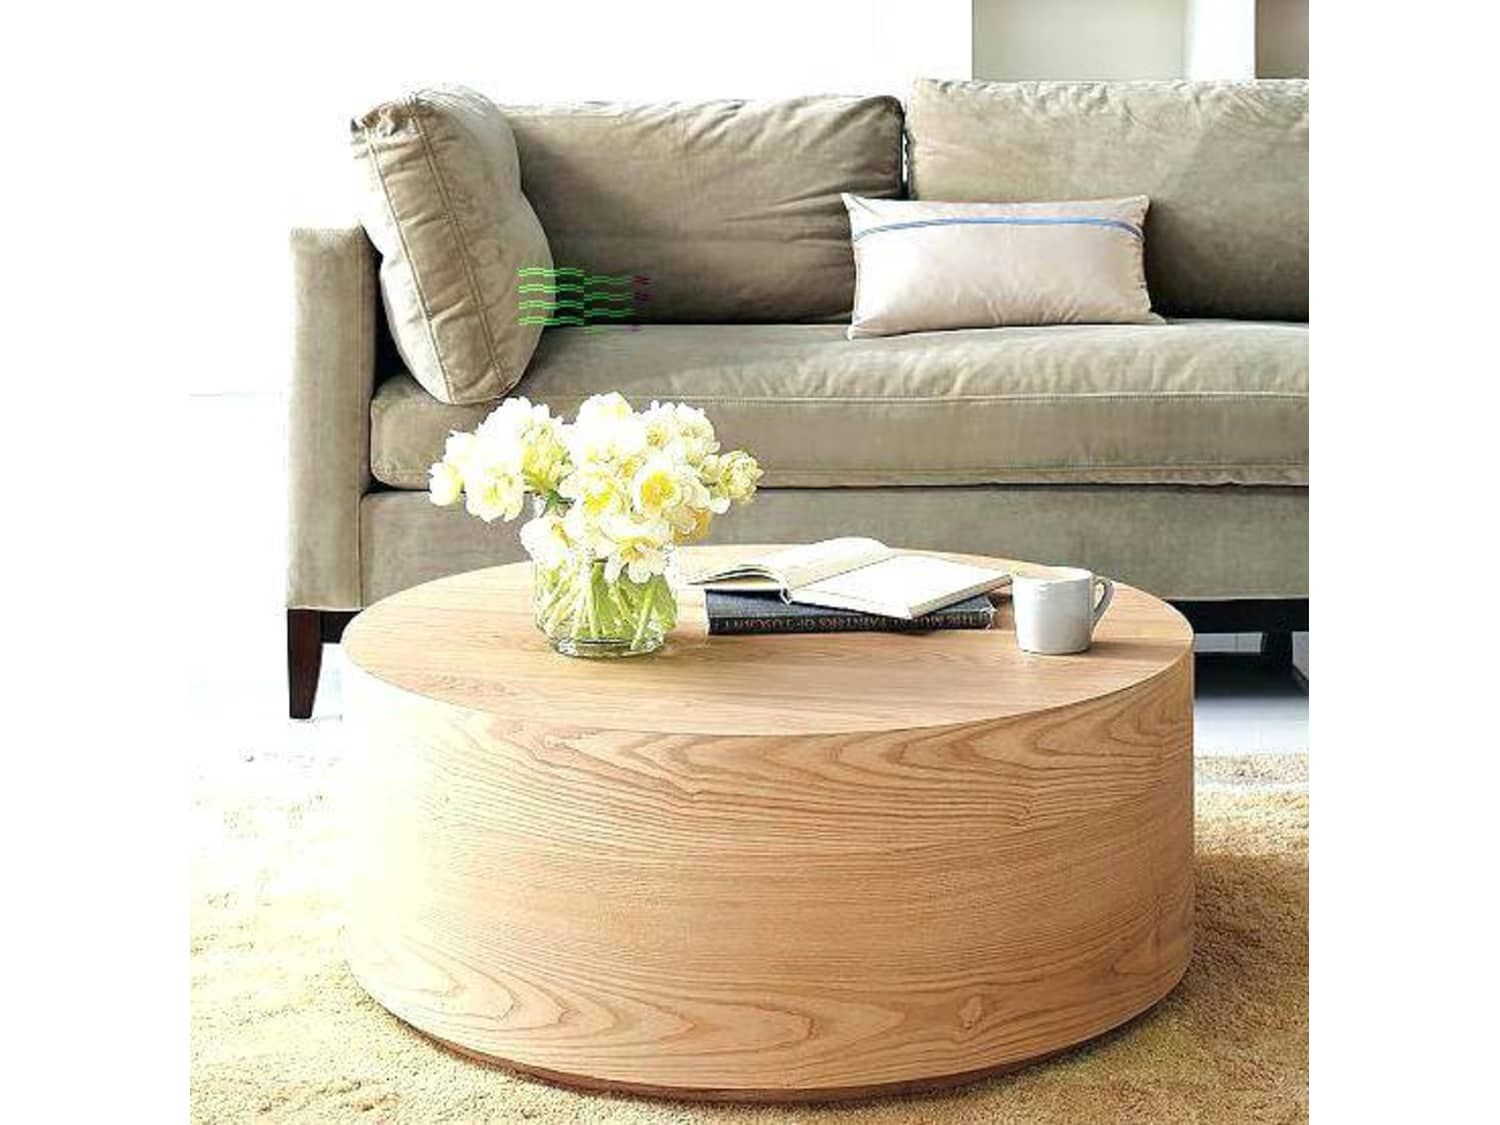 Wood Drum Style Coffee Table Apartment Therapy S Bazaar In 2020